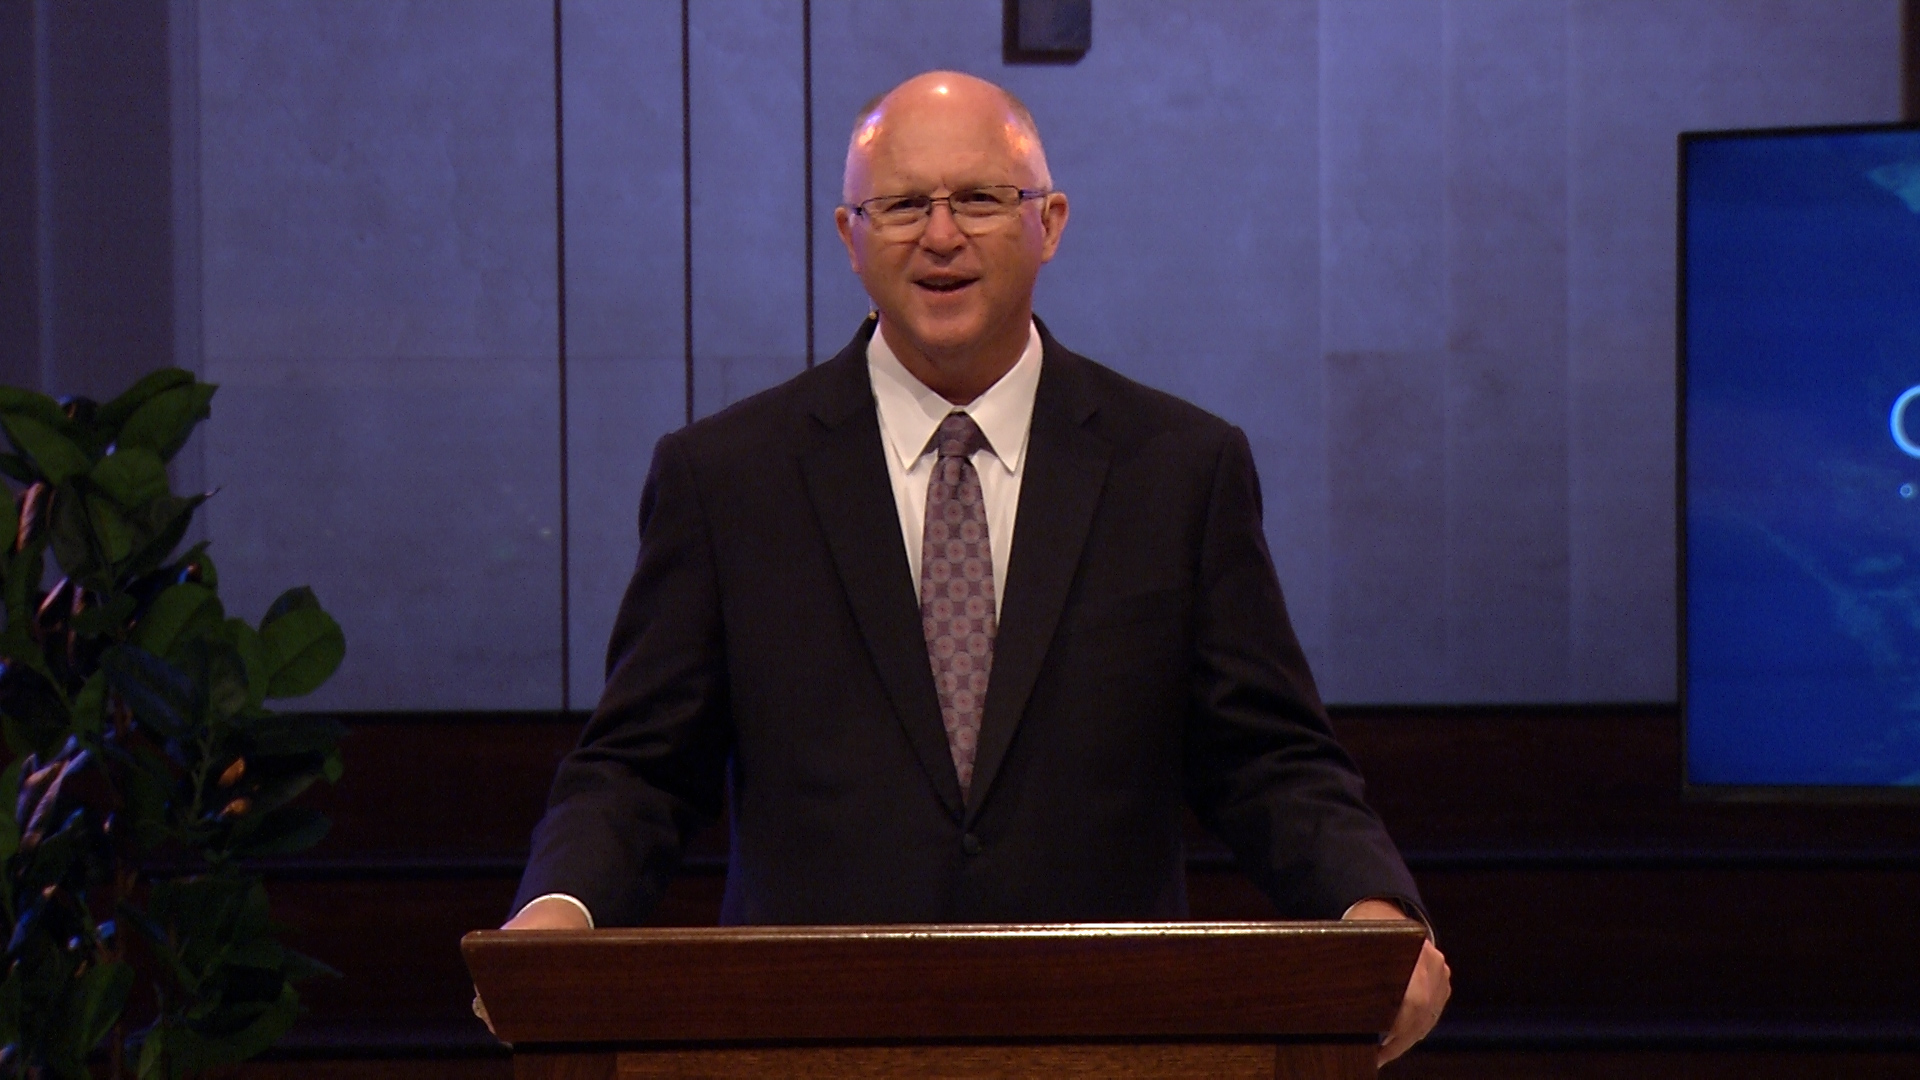 Pastor Paul Chappell: Consolation, Our Fellowship in the Gospel